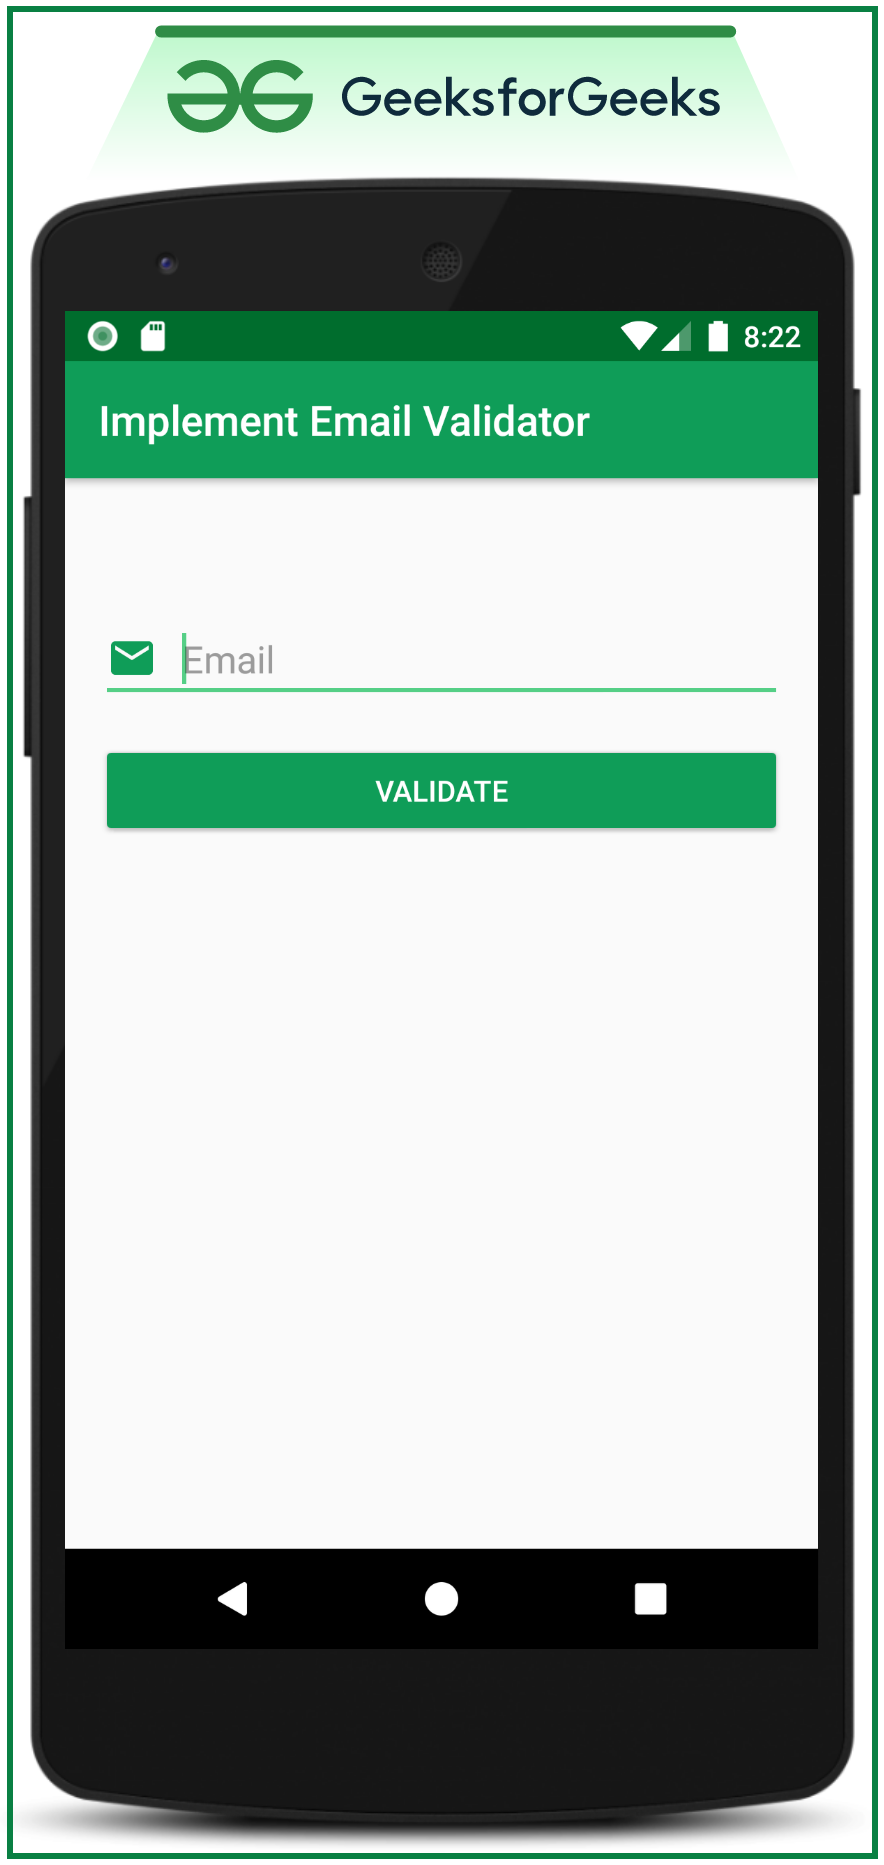 Implement Email Validator in Android